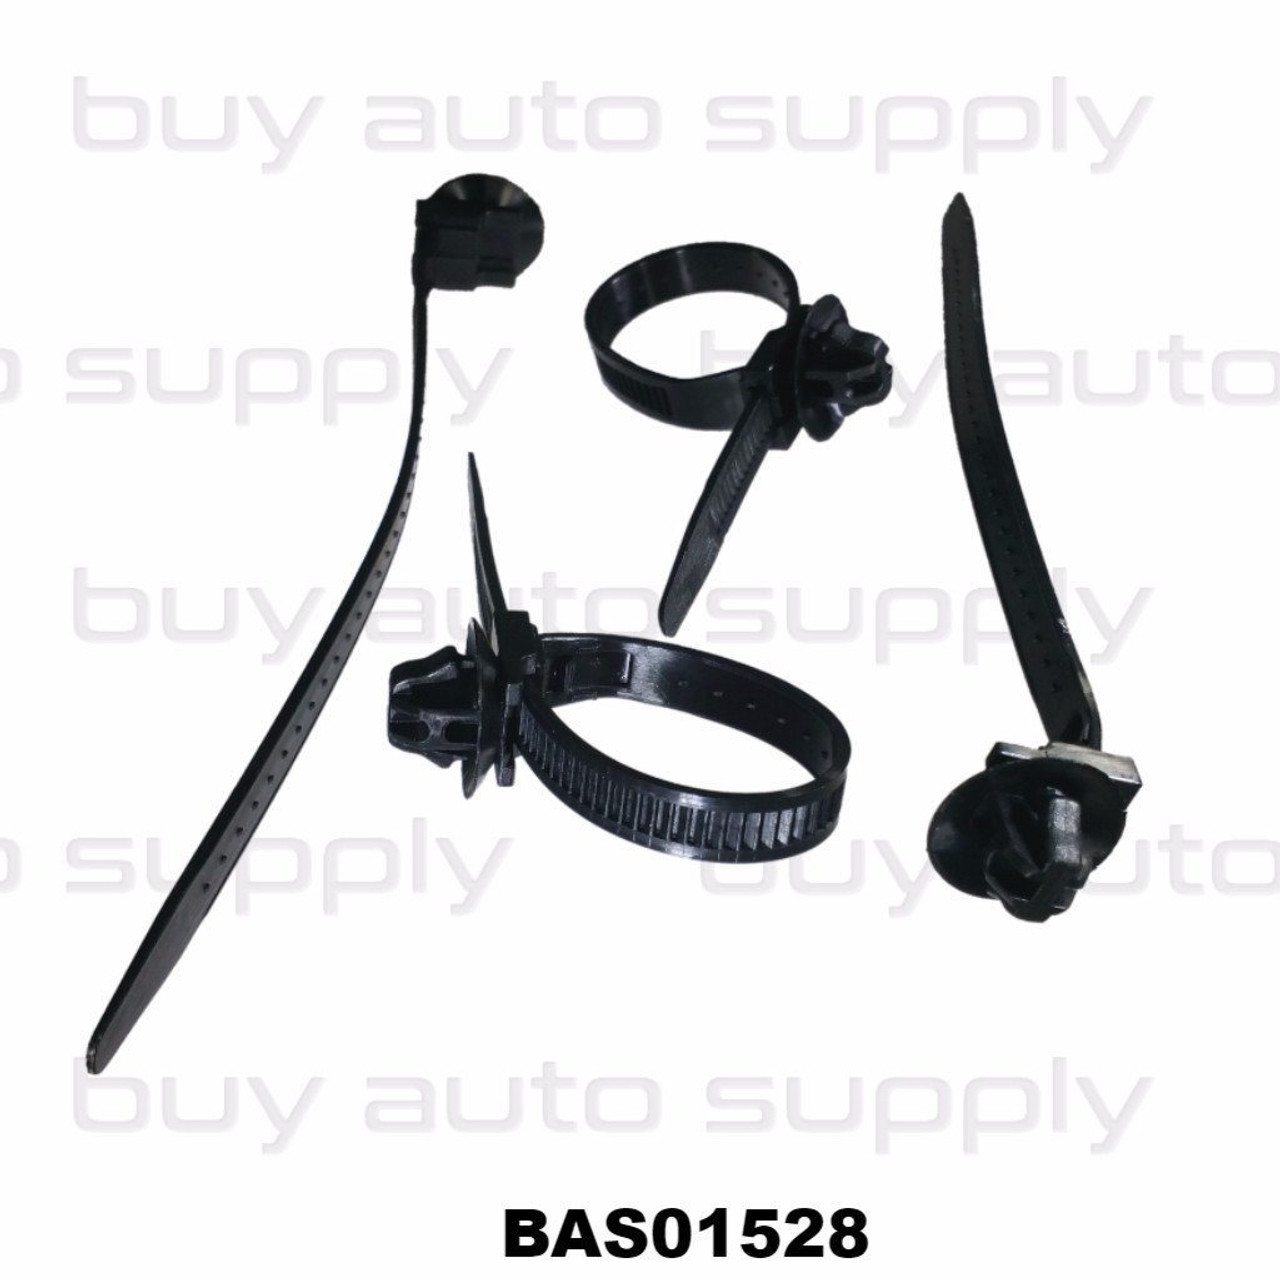 Oval Hole Zip Ties - BAS01528 - Interchange 21355, 99-9051